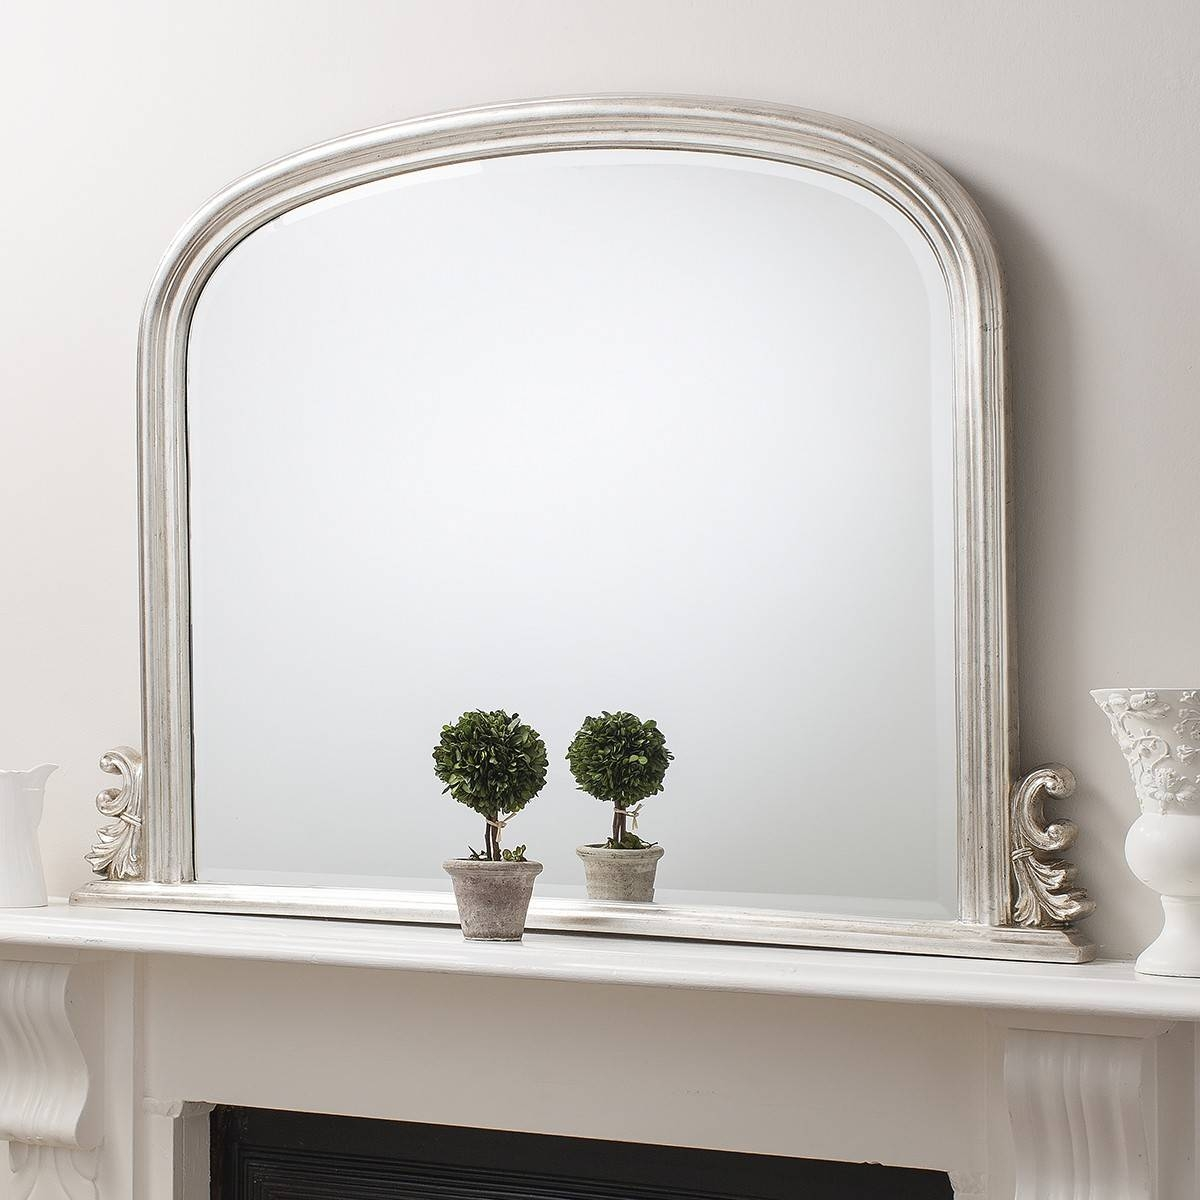 Mirror : Wonderful White Overmantle Mirror Mirror Outlet Has The with regard to Over Mantel Mirrors (Image 11 of 15)